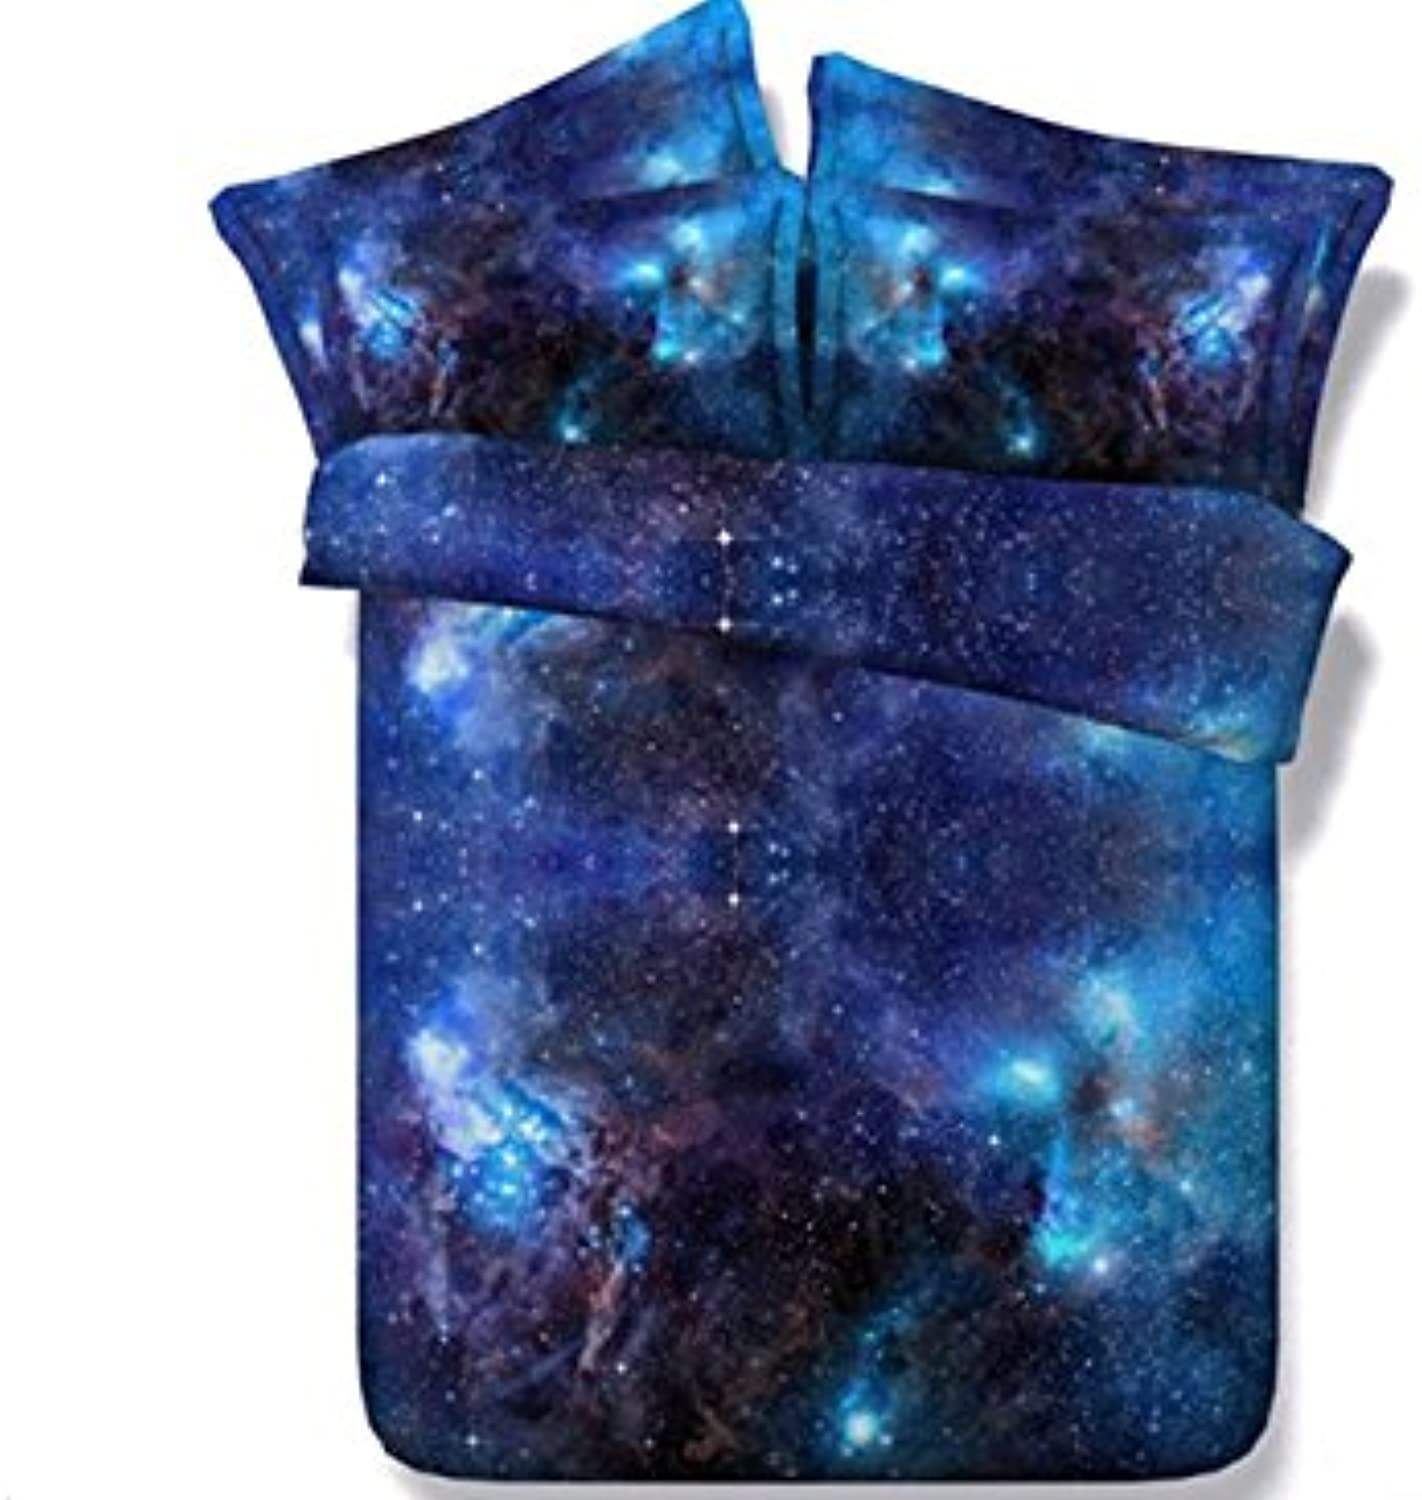 Ammybeddings Cool 3D Galaxy Bedding Sets Digital Print  King size Luxury Soft Stylish Home Decor Bedding 4 Piece bluee Duvet Cover with 2 Pillow Shams and 1 Sheet